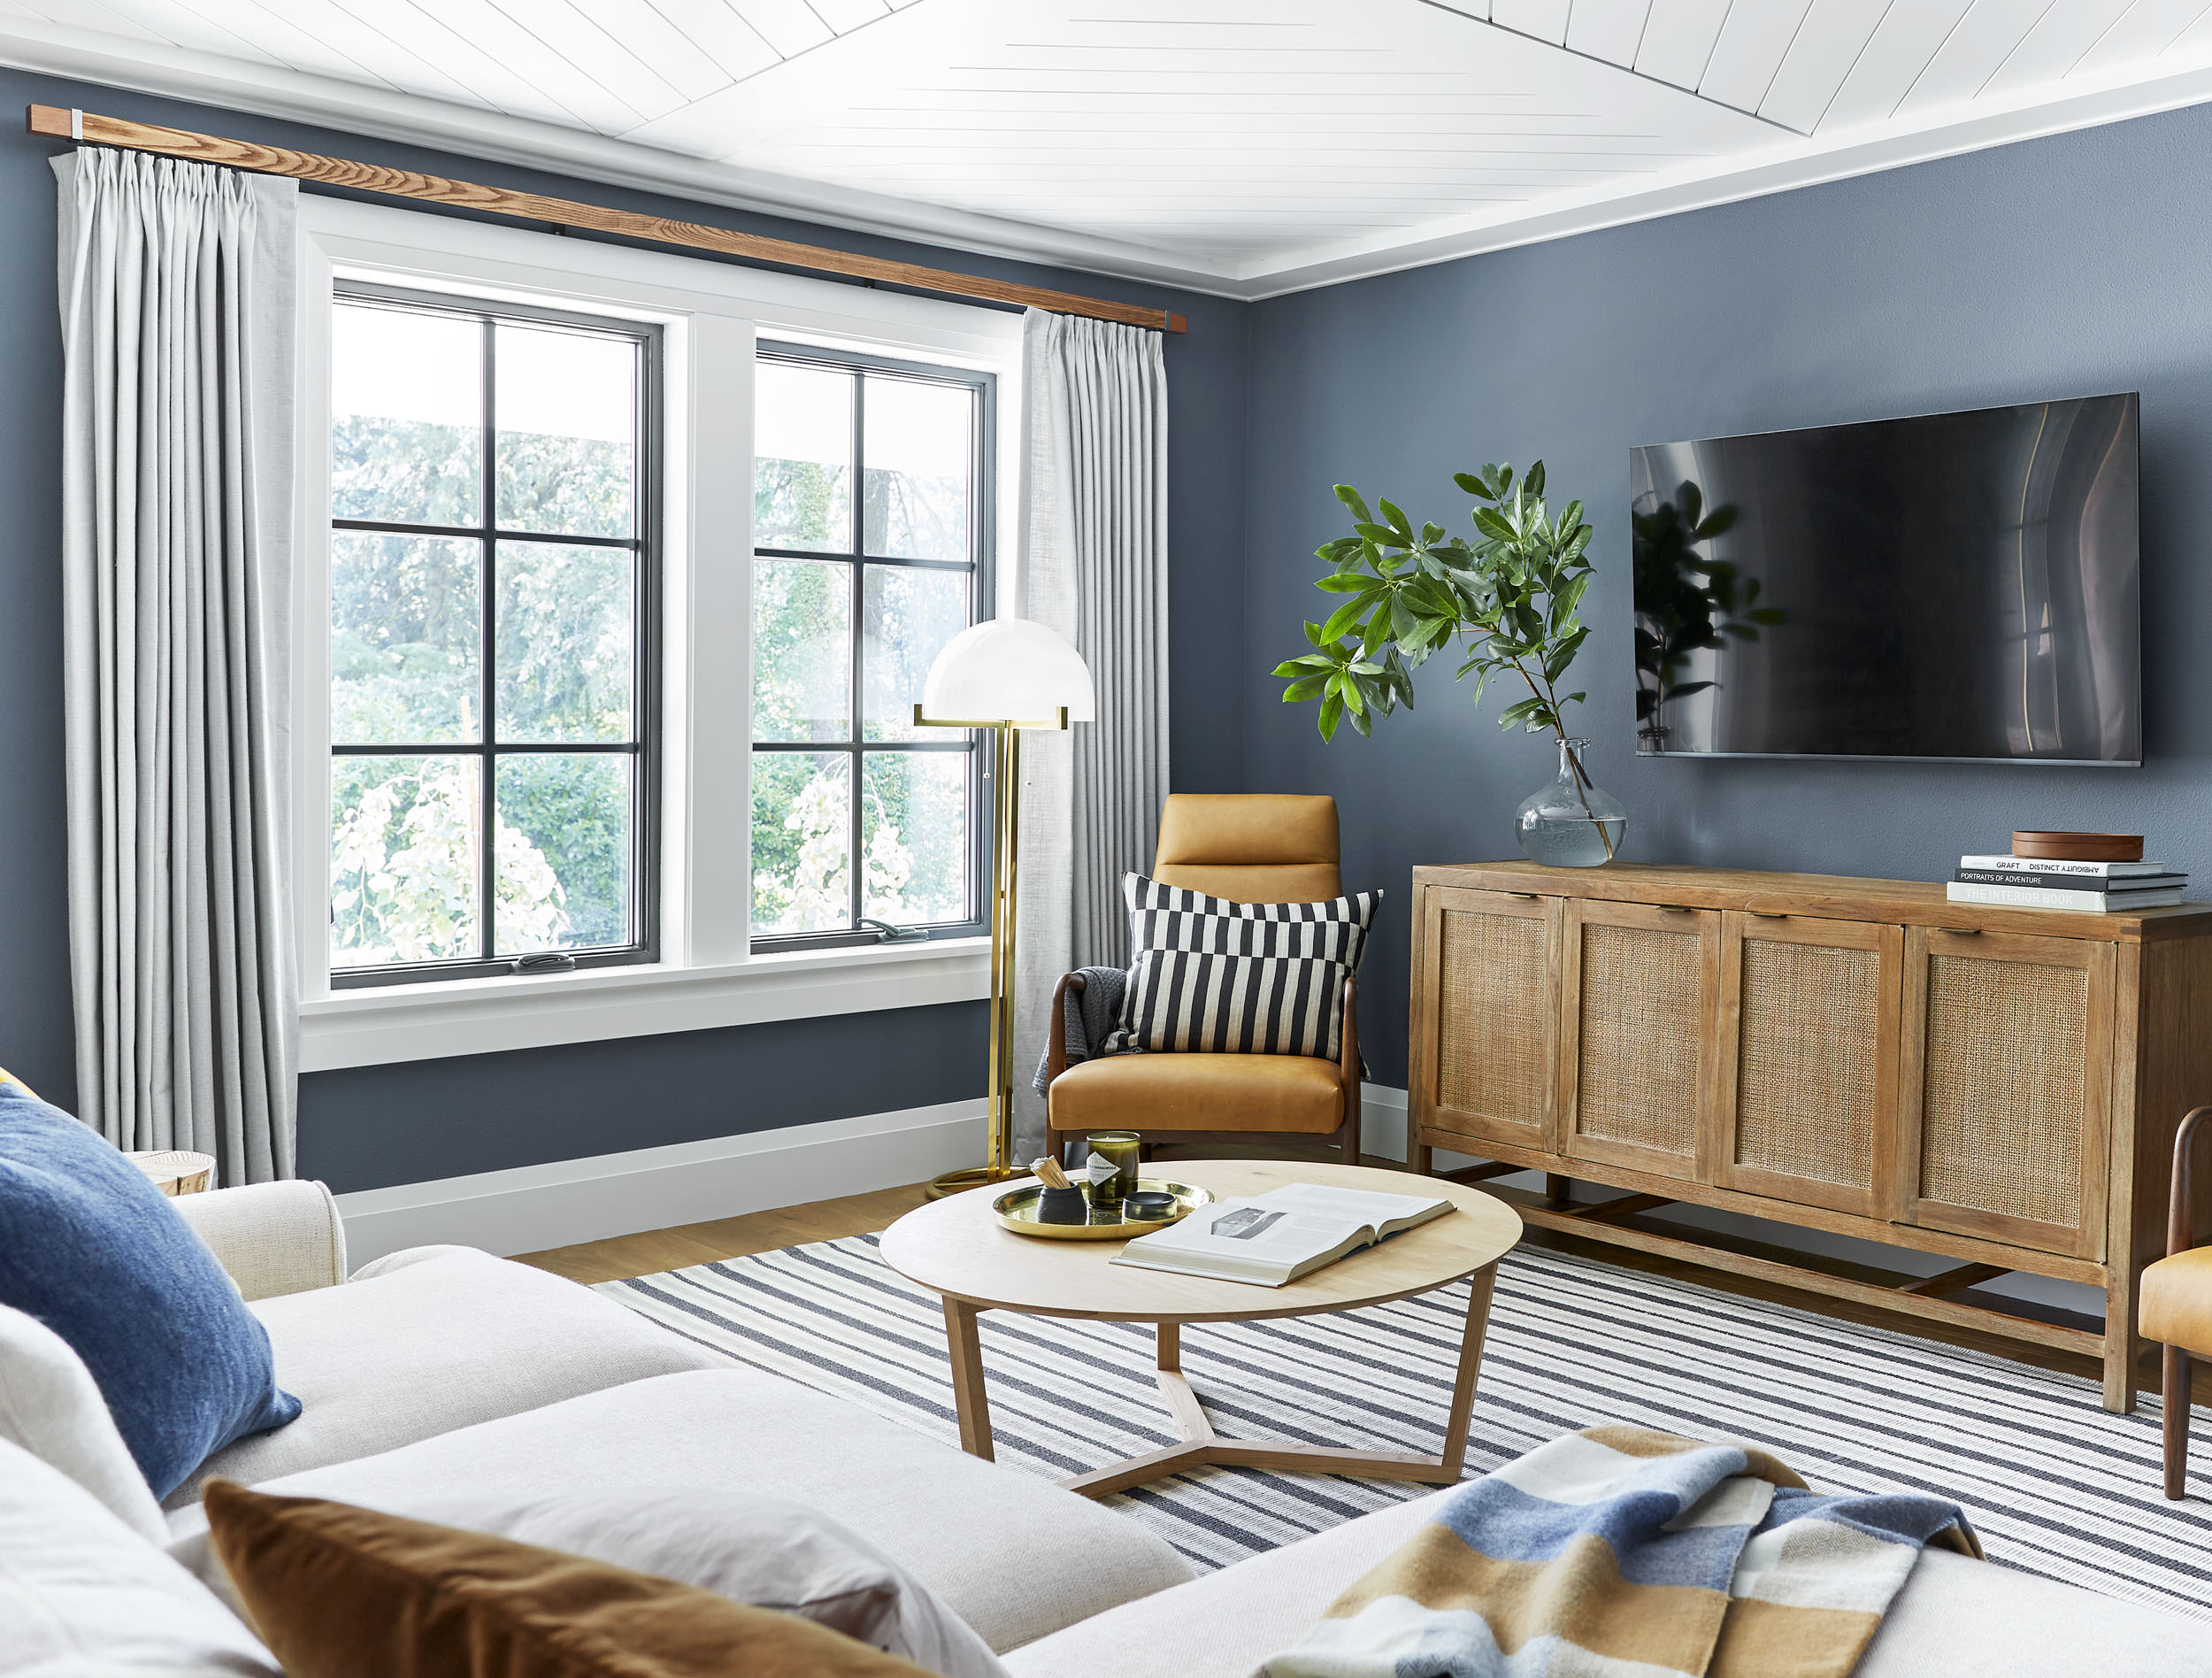 Sherwin Williams Blue Paint Colors: Emily Henderson